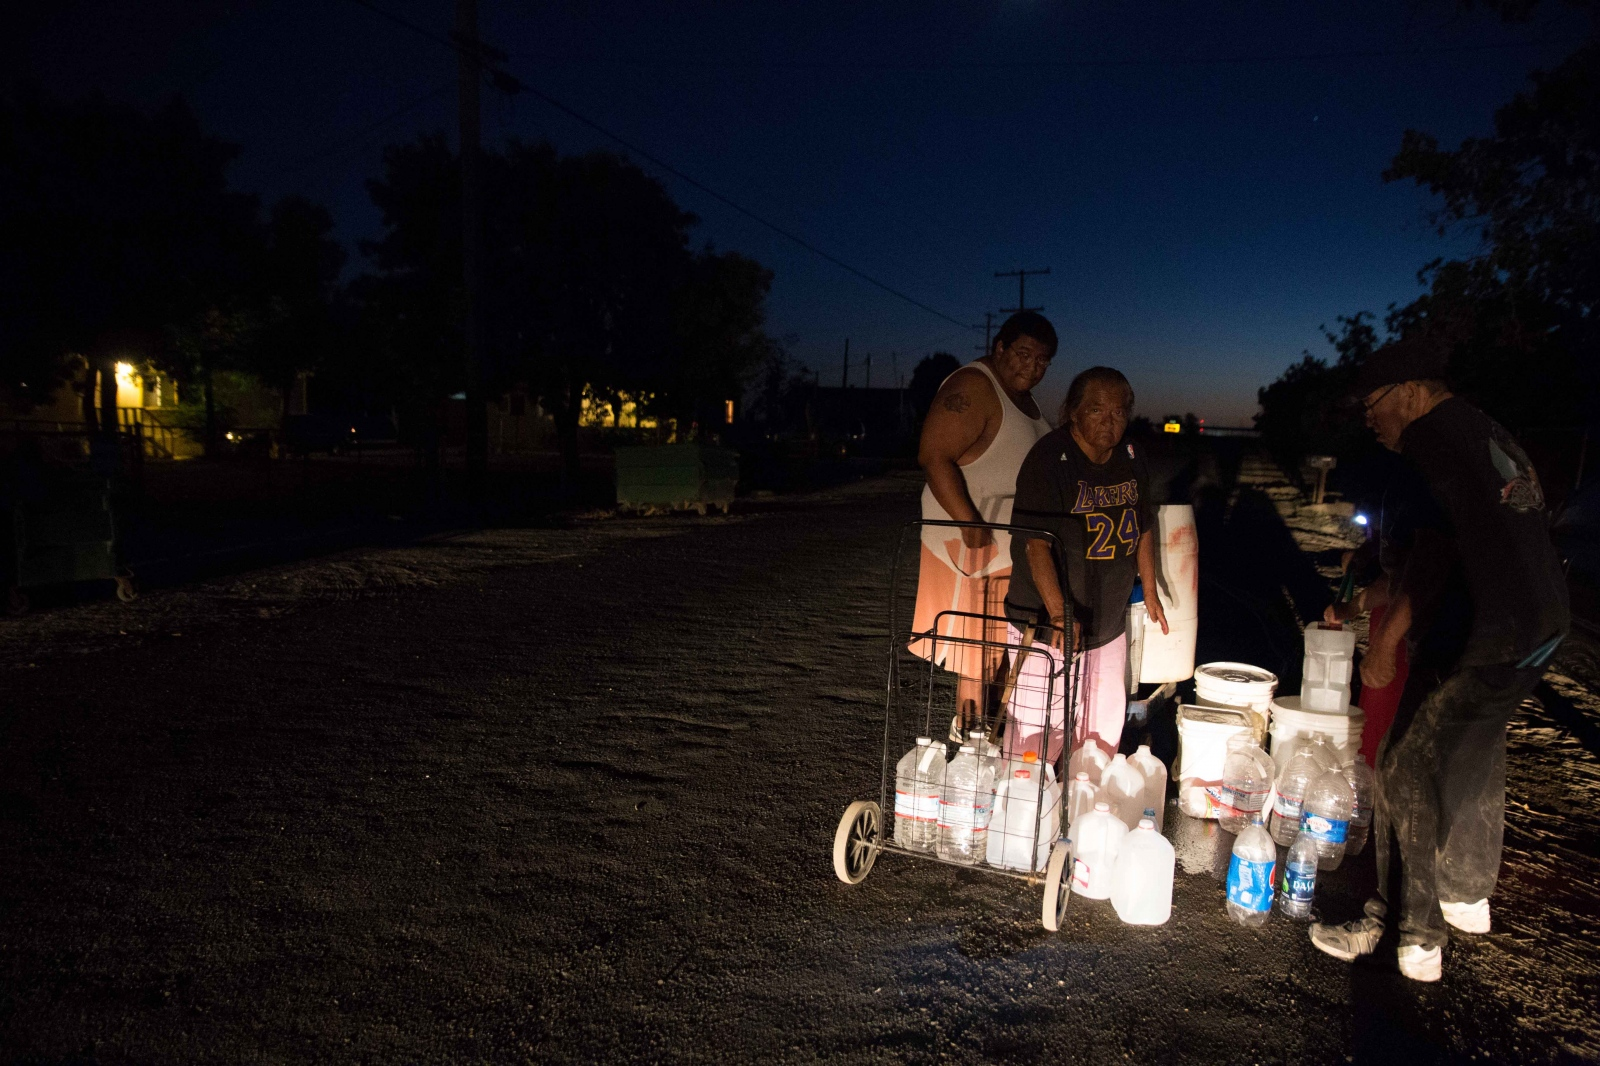 "Hilda Garcia and her family fill up their various jugs and buckets from a neighbor's hose as night falls in Okieville, California. ""This is how we fill water,"" says Hilda, ""A lot of hassle, huh? You do what you got to do when you're homeless and got no water."" July 2016."